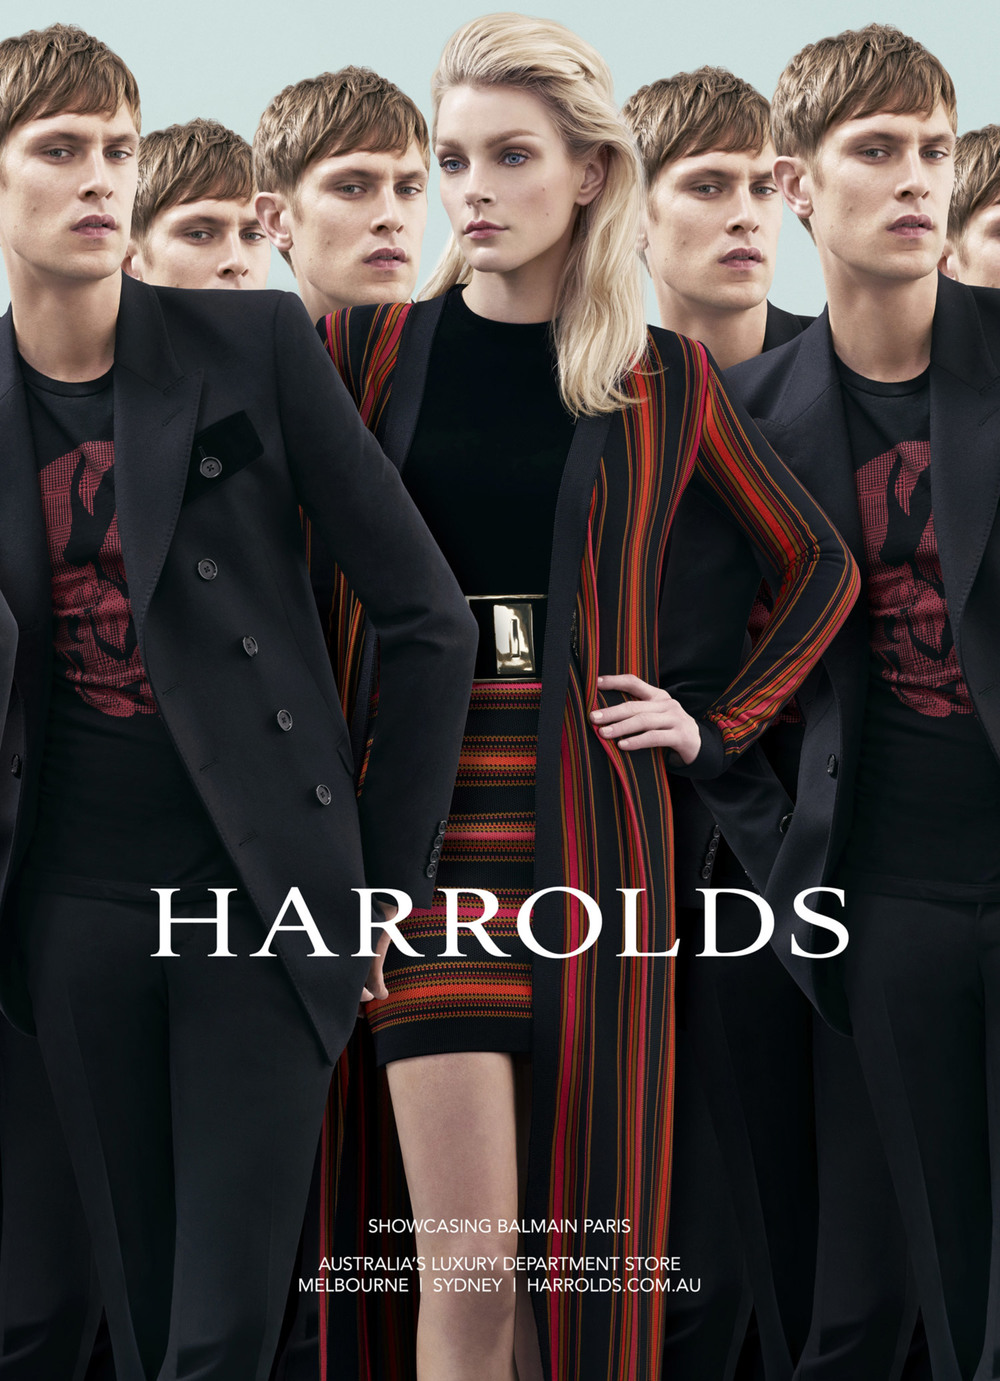 Harrolds_SS15_Harpers_Bazaar_Revised.jpg